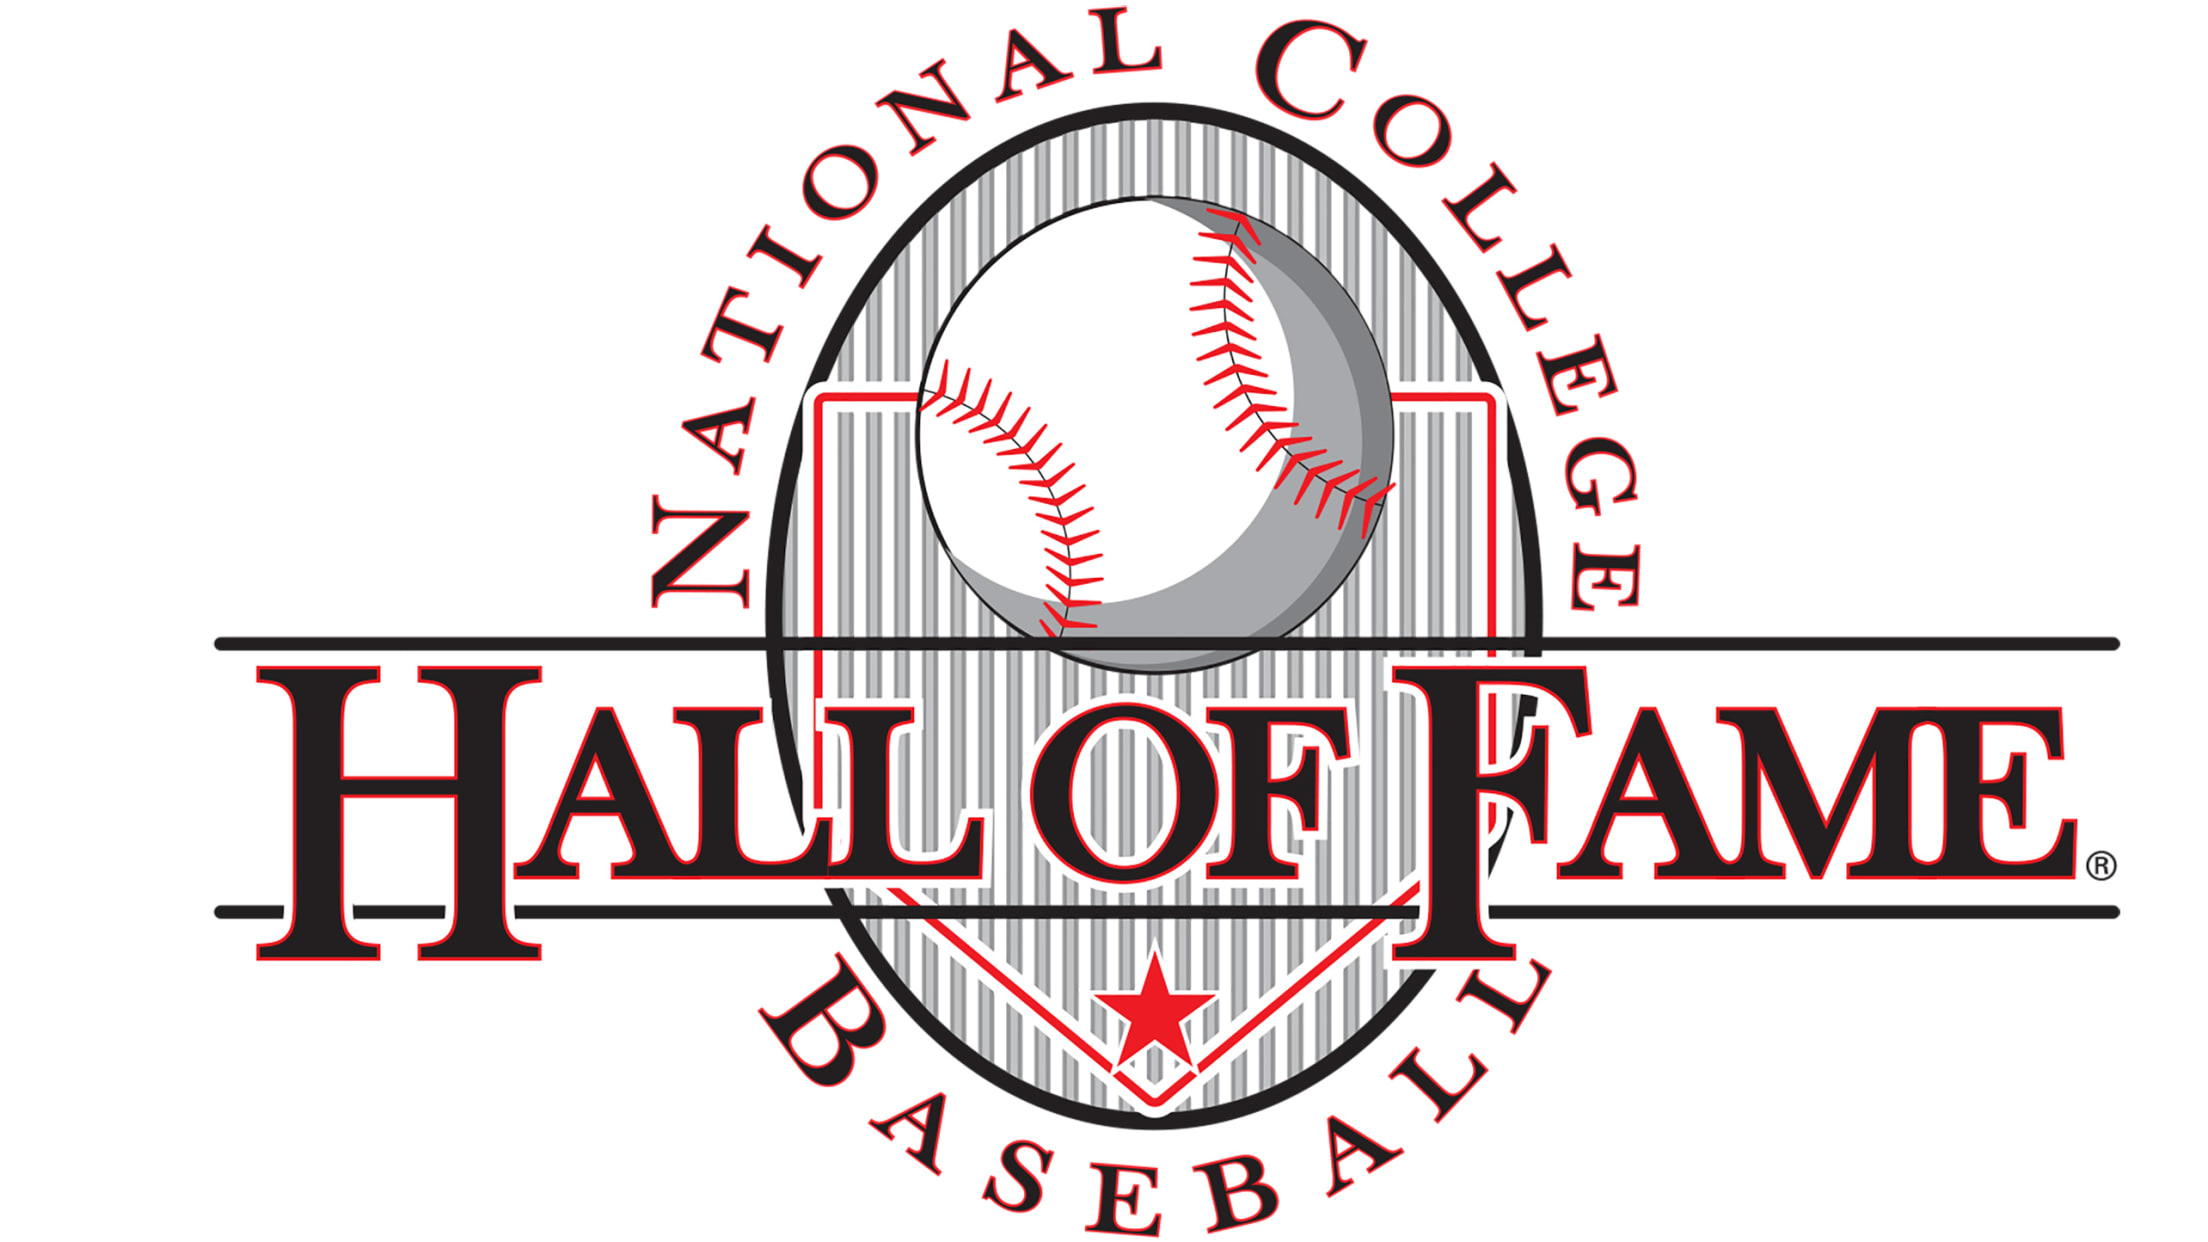 2019 National College Baseball Hall of Fame Induction Class